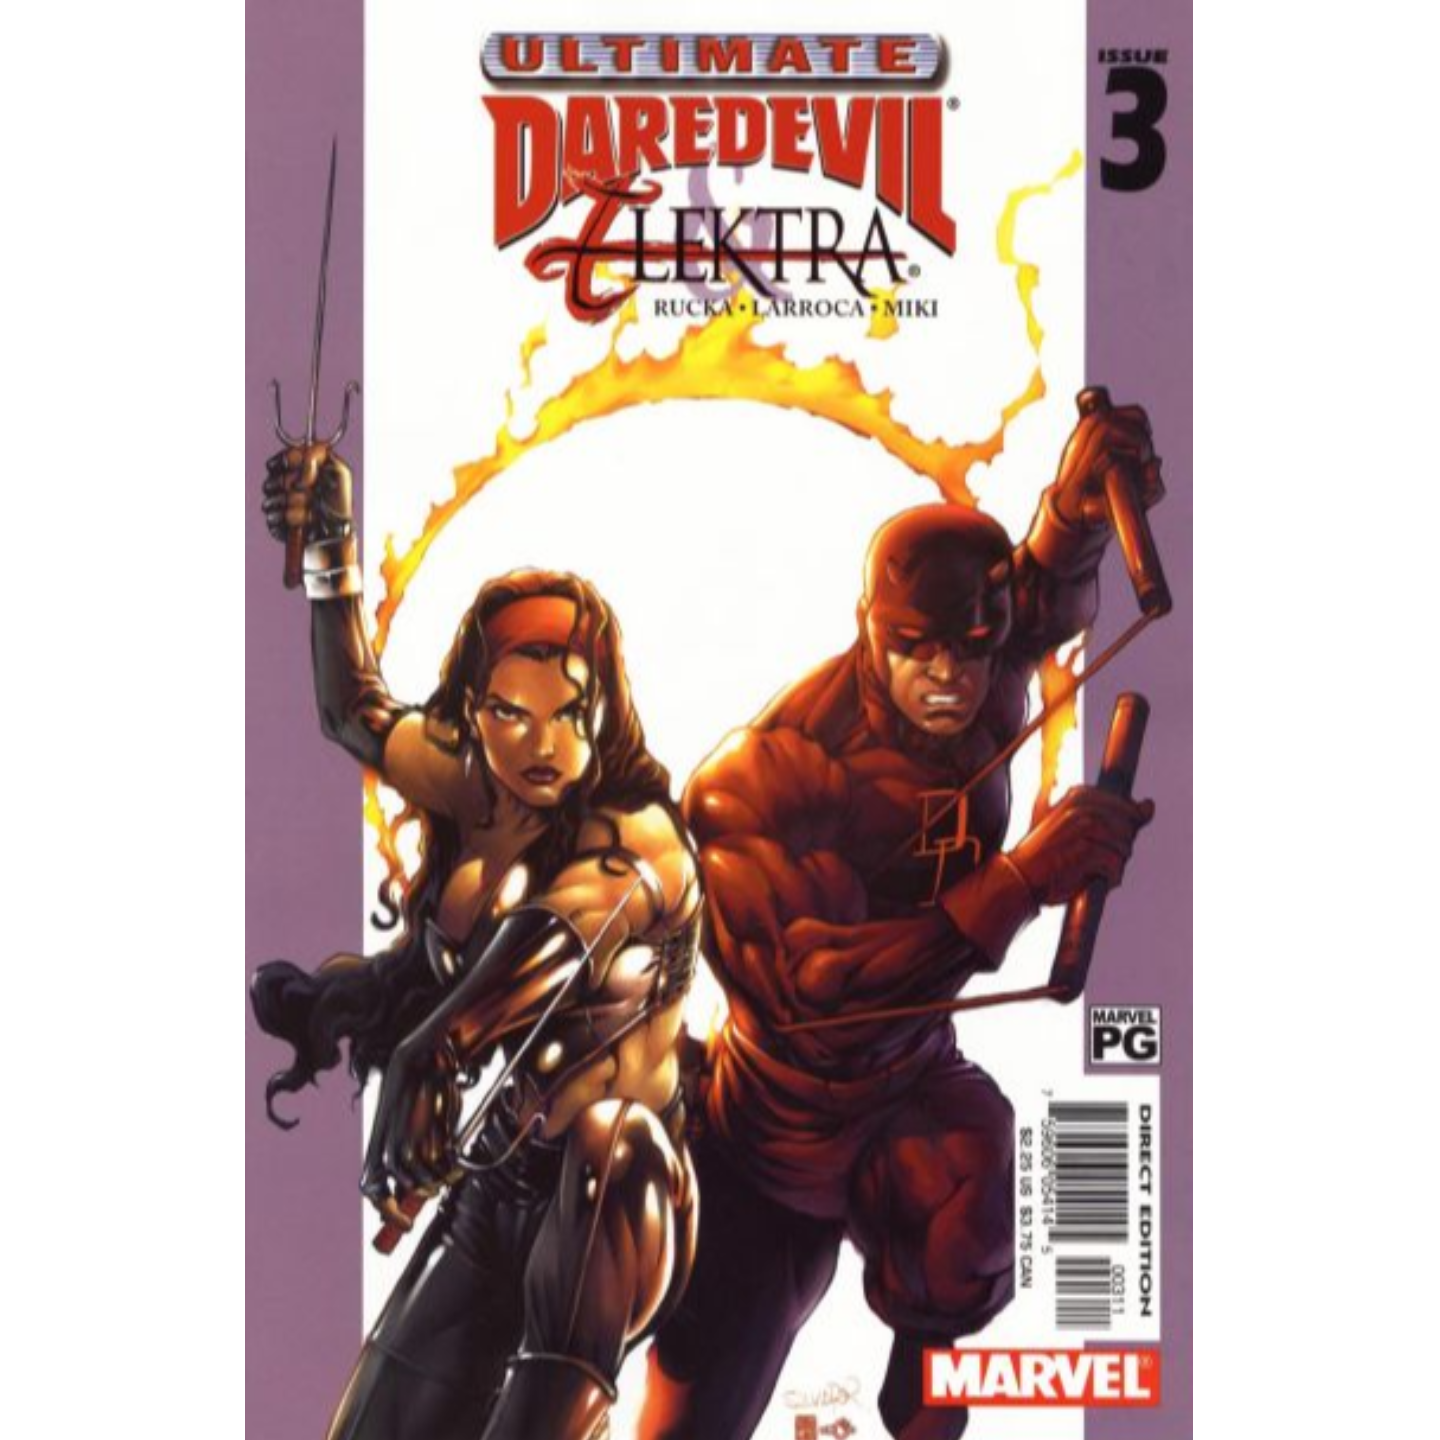 ULTIMATE DAREDEVIL AND ELEKTRA #1 - #4 (COMPLETE SET)